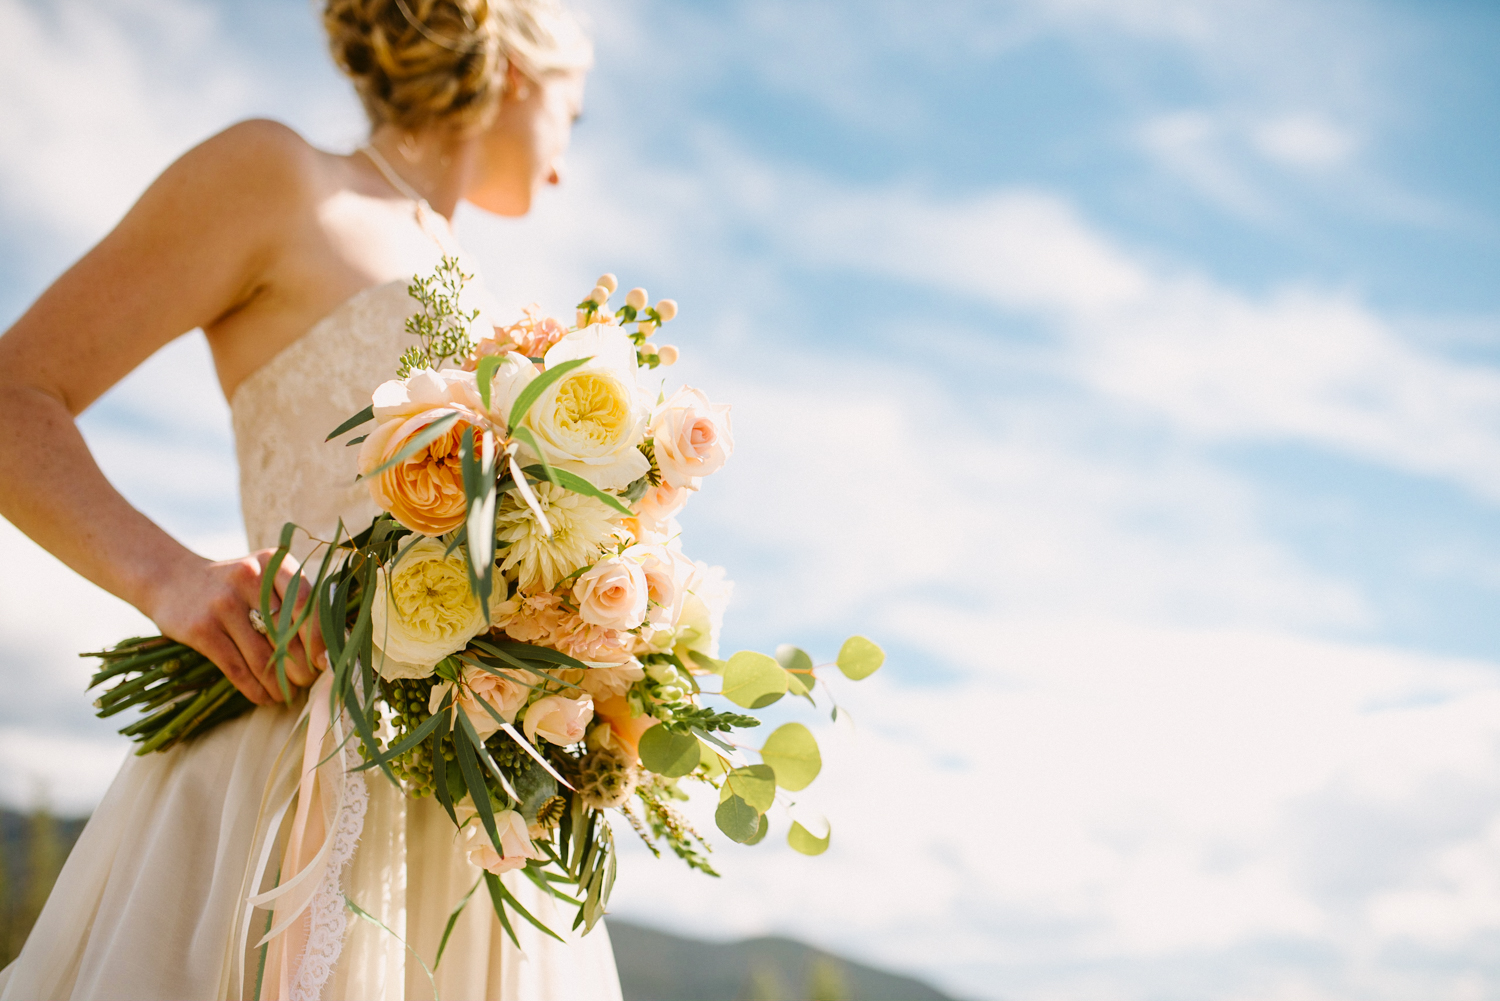 Flowers by Lace and Lilies / Colorado wedding florist - peach, sage, green, white, ivory, blush - natural, organic, romantic, whimsical - Fort Collins, Grand Lake, Destination, Travel - bride, bridal bouquet, eucalytpus, scabiosa pod, garden rose, dahlia, berries, olive